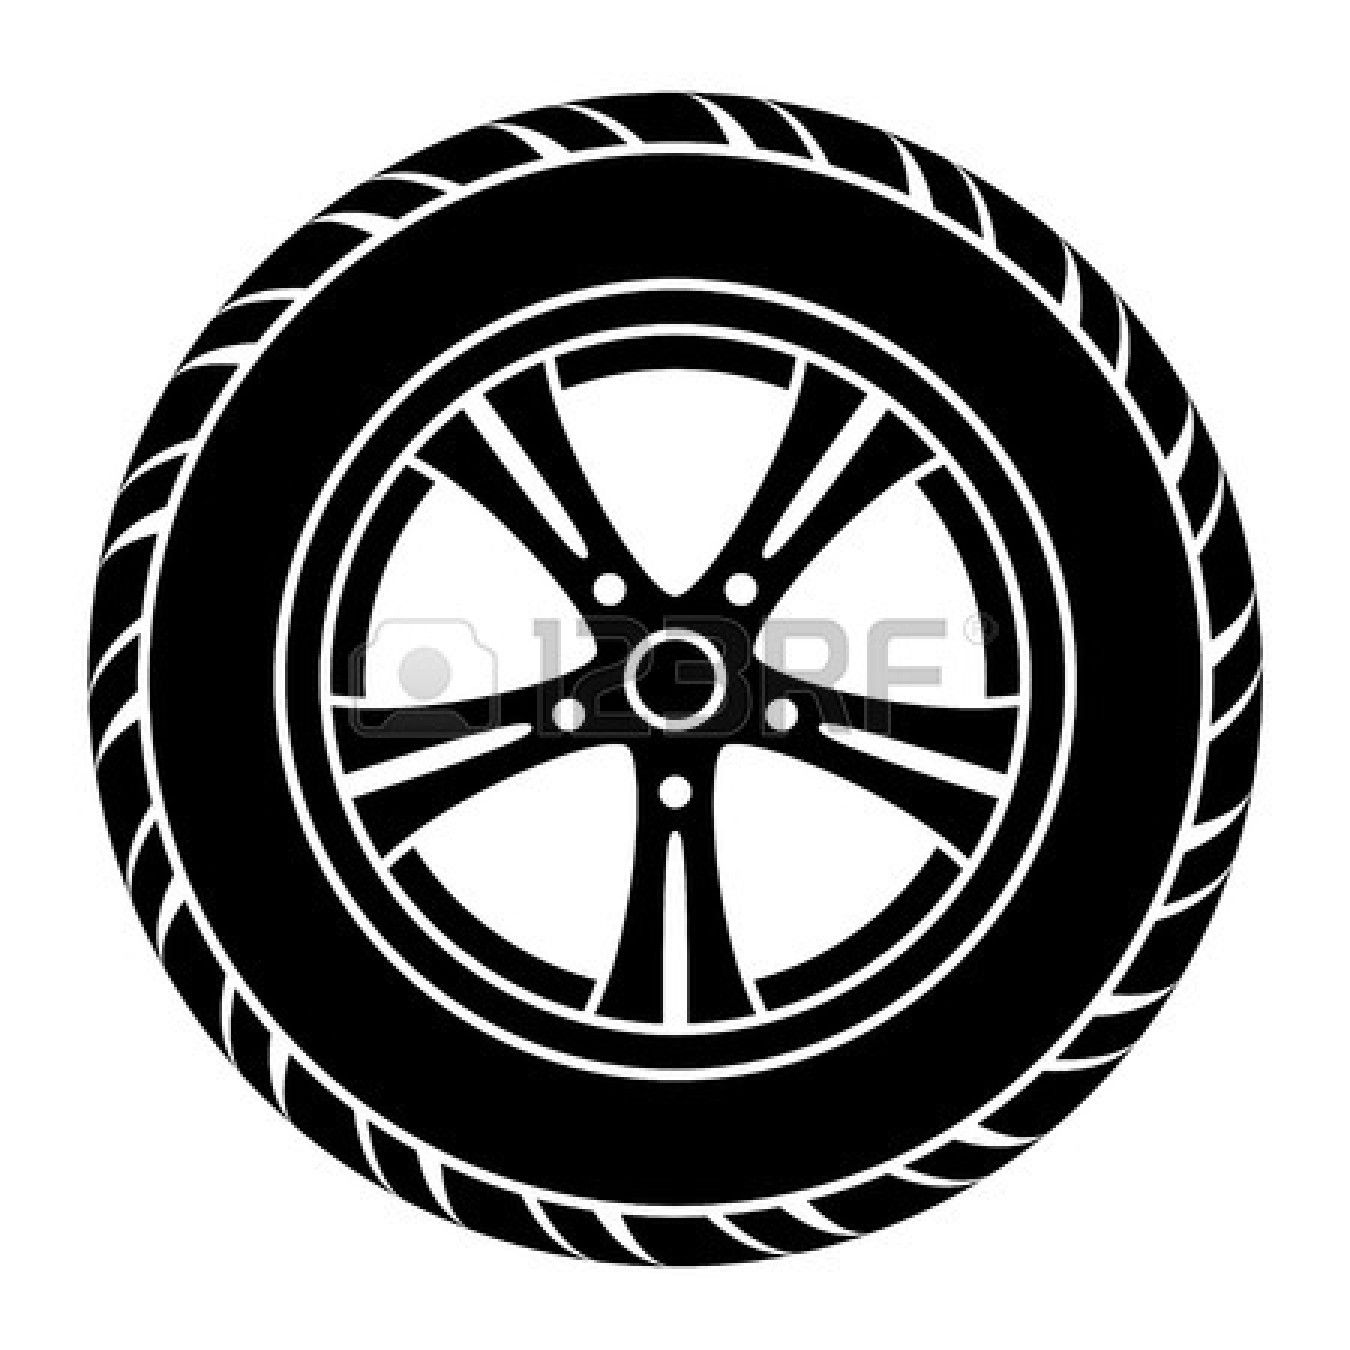 Black Silhouette Automotive Wheel With Alloy Wheels And Tires Car Wheel Wheels And Tires Wheel